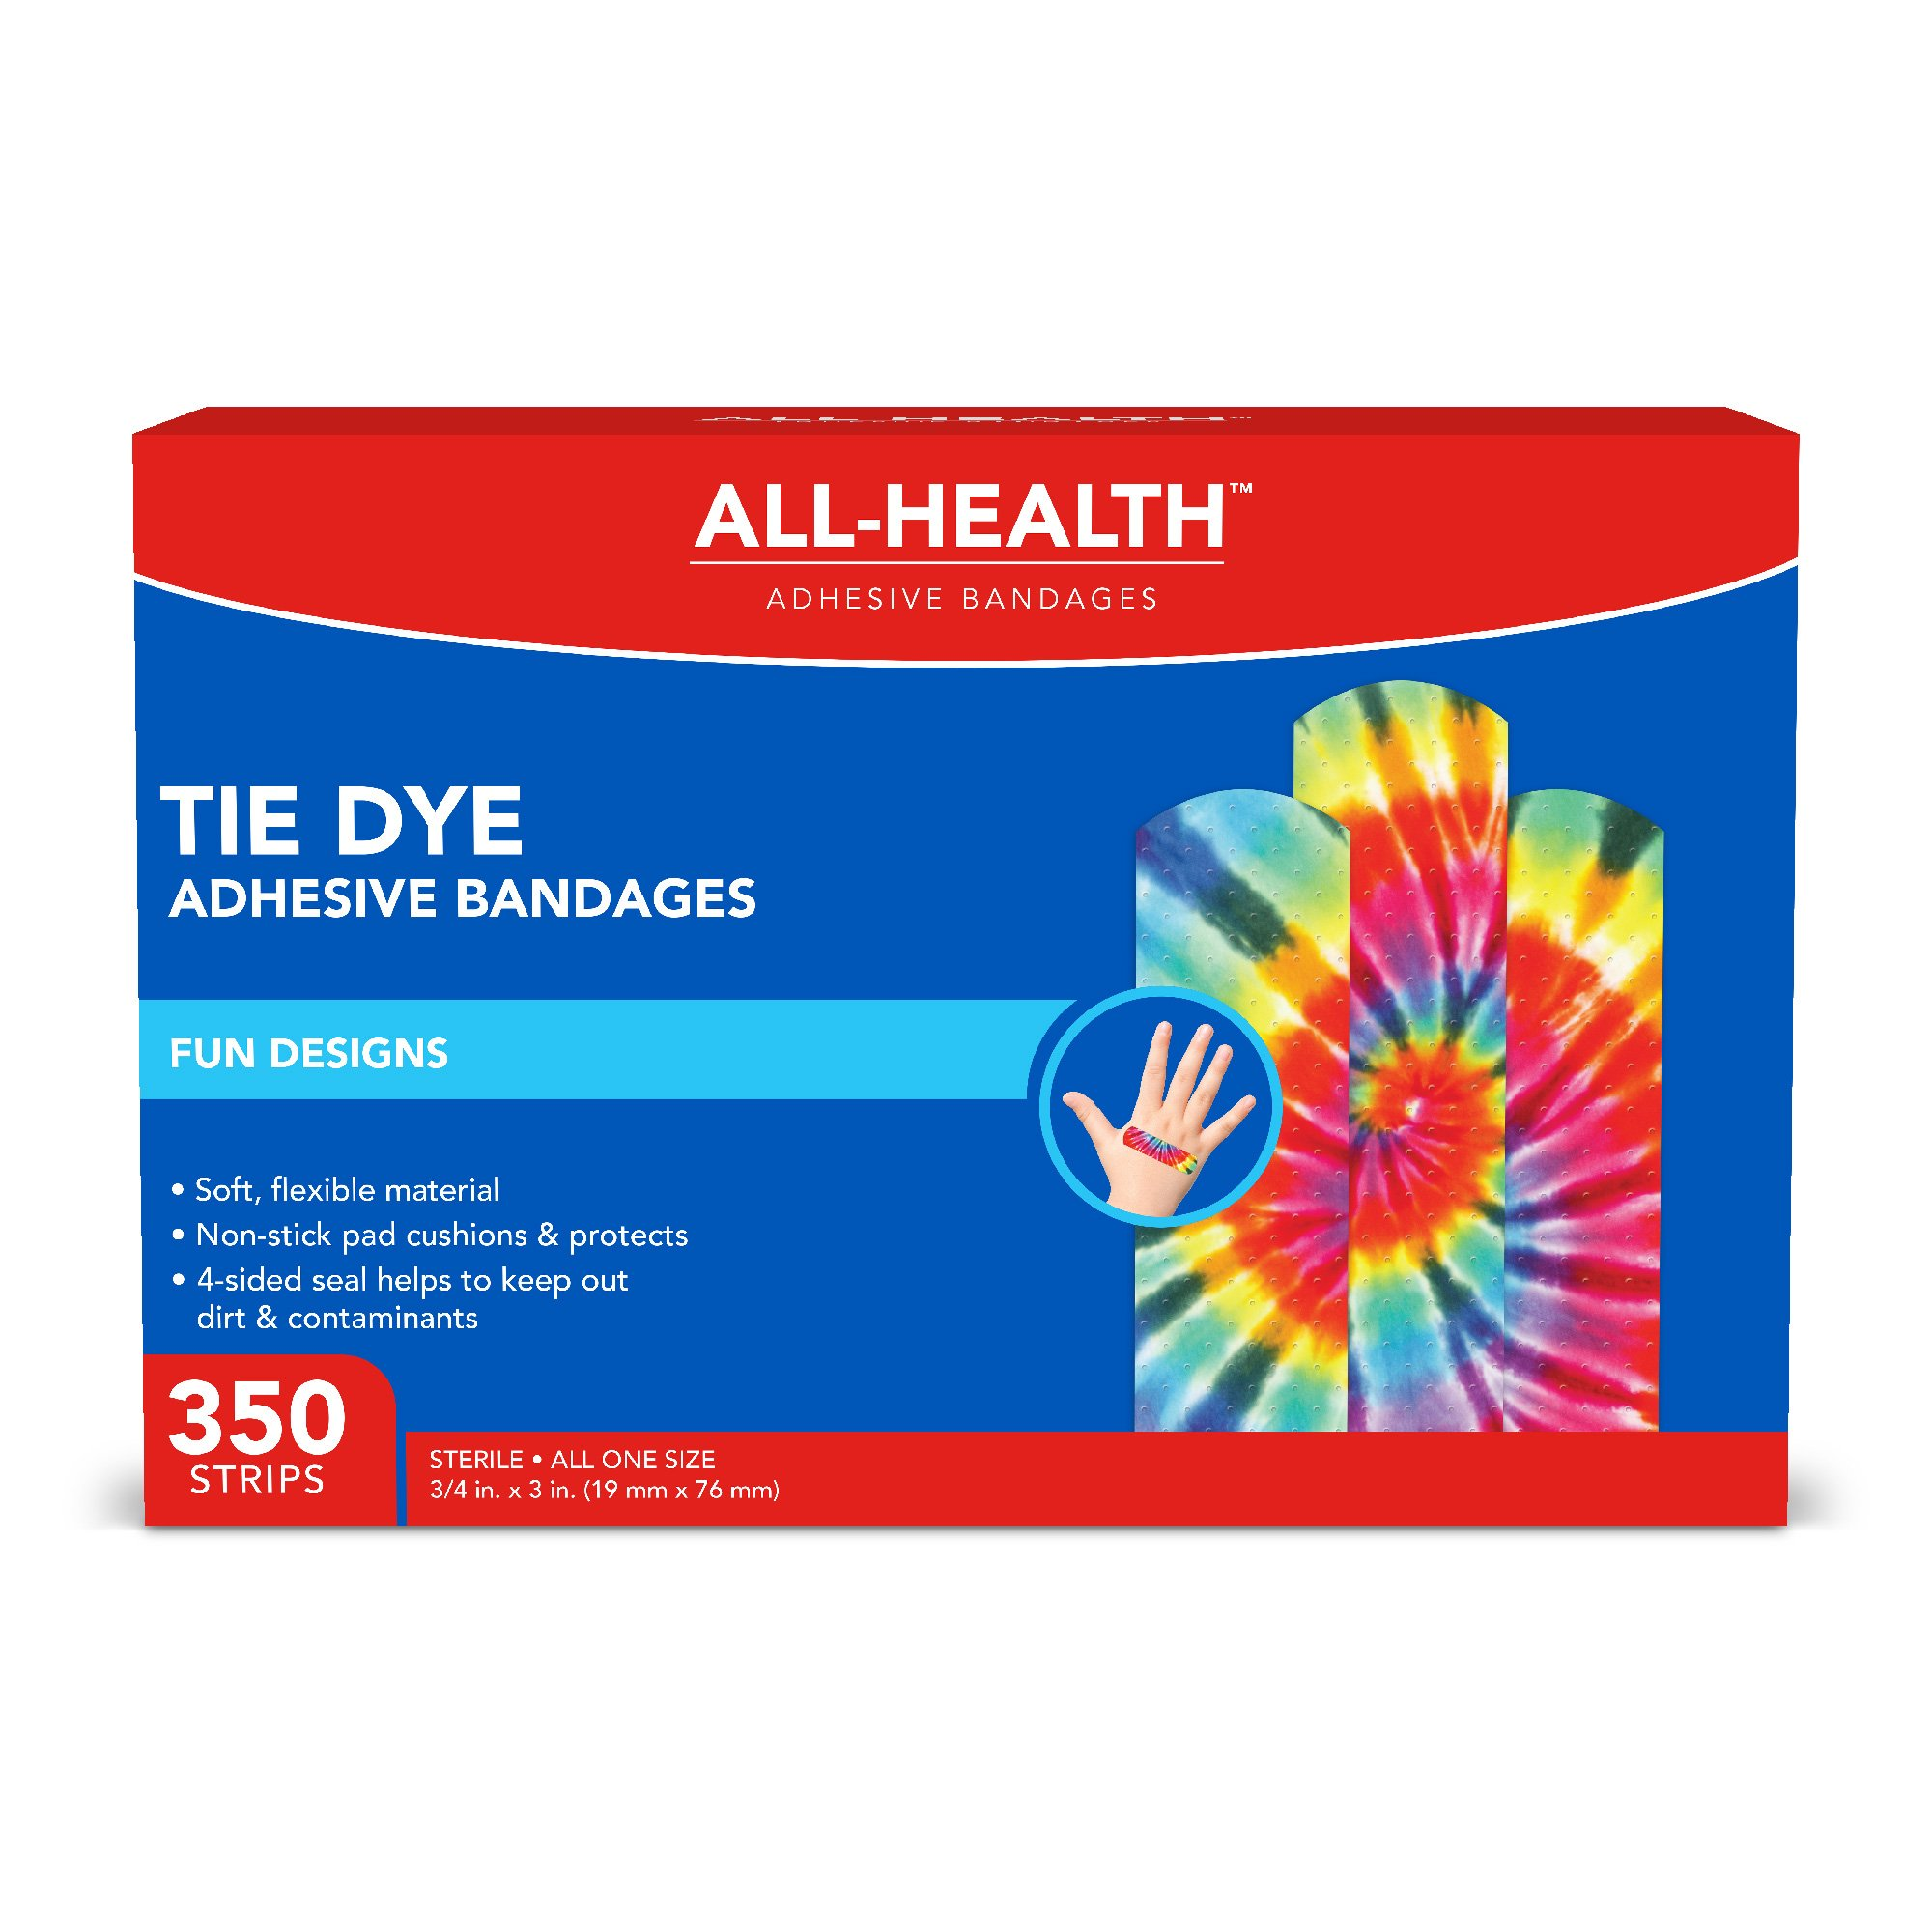 All-Health Tie Dye Adhesive Bandages, 3/4 inch, 350 Count by All Health